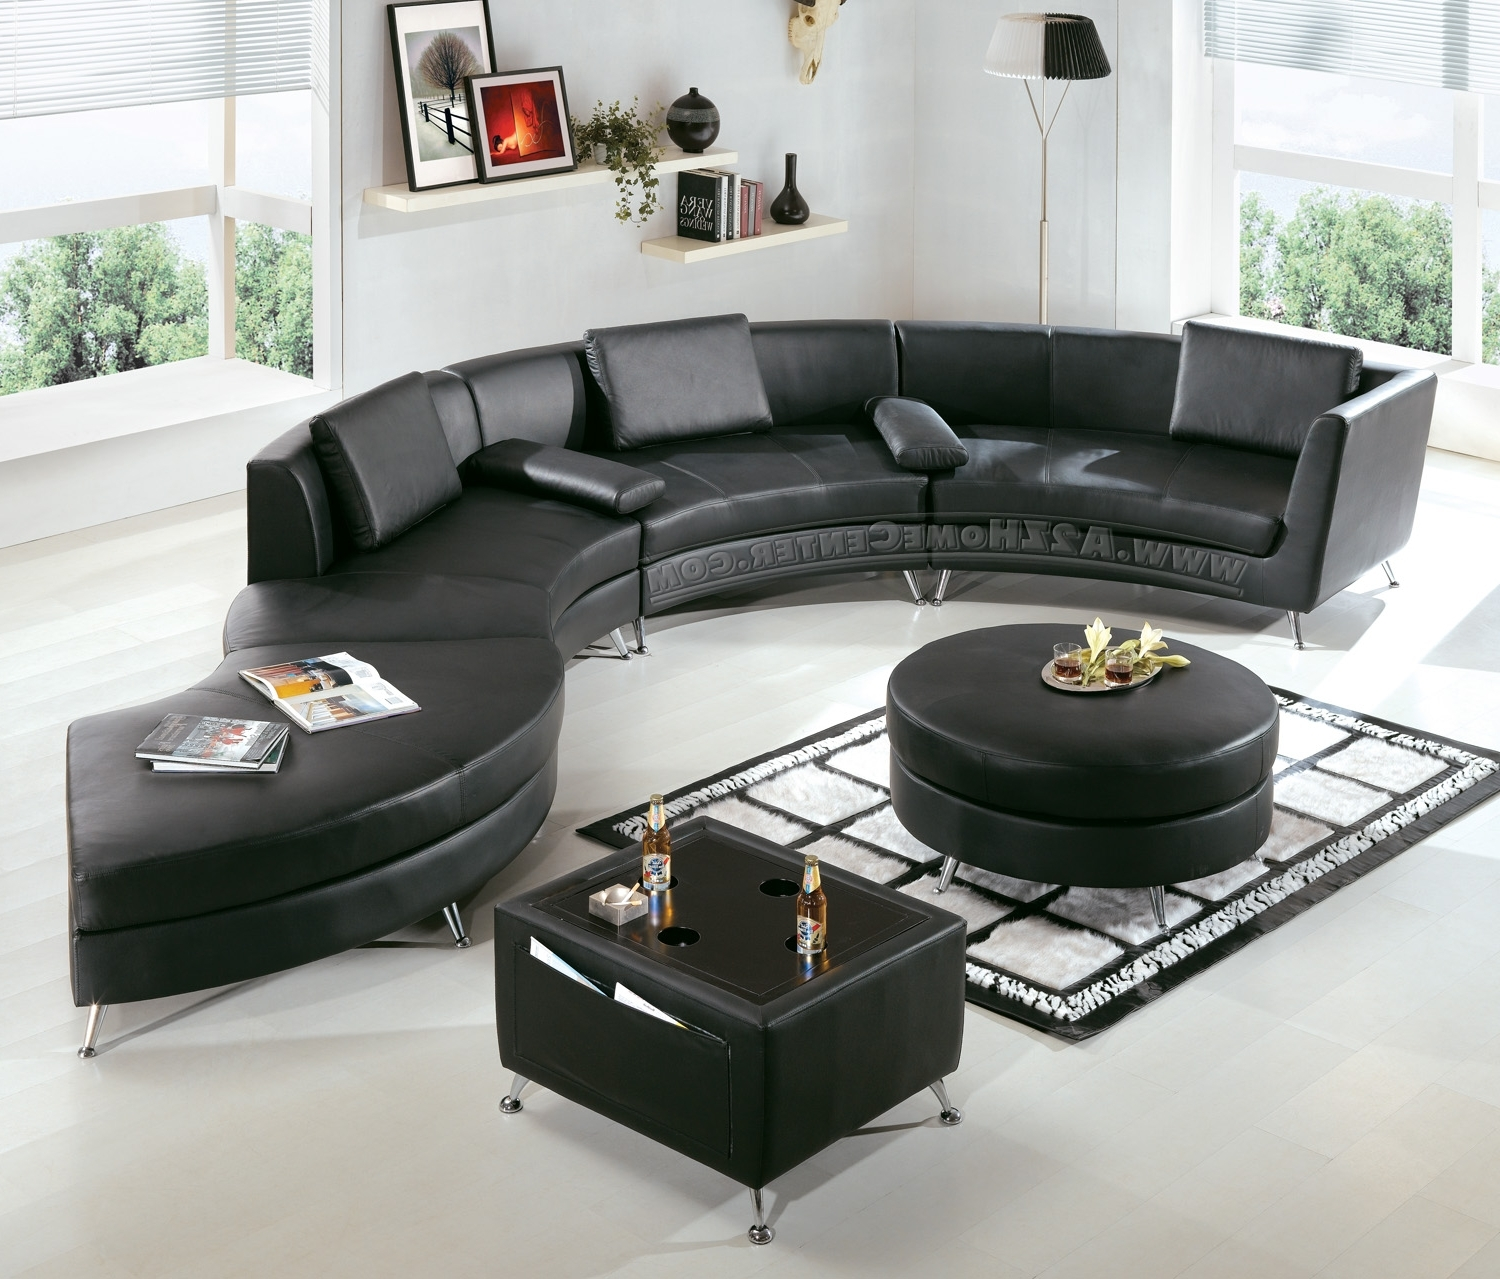 Kitchener Sectional Sofas For Fashionable Coffee Table : Sofa Set Toronto Best Sectionals Toronto Buy Sofa (View 10 of 15)